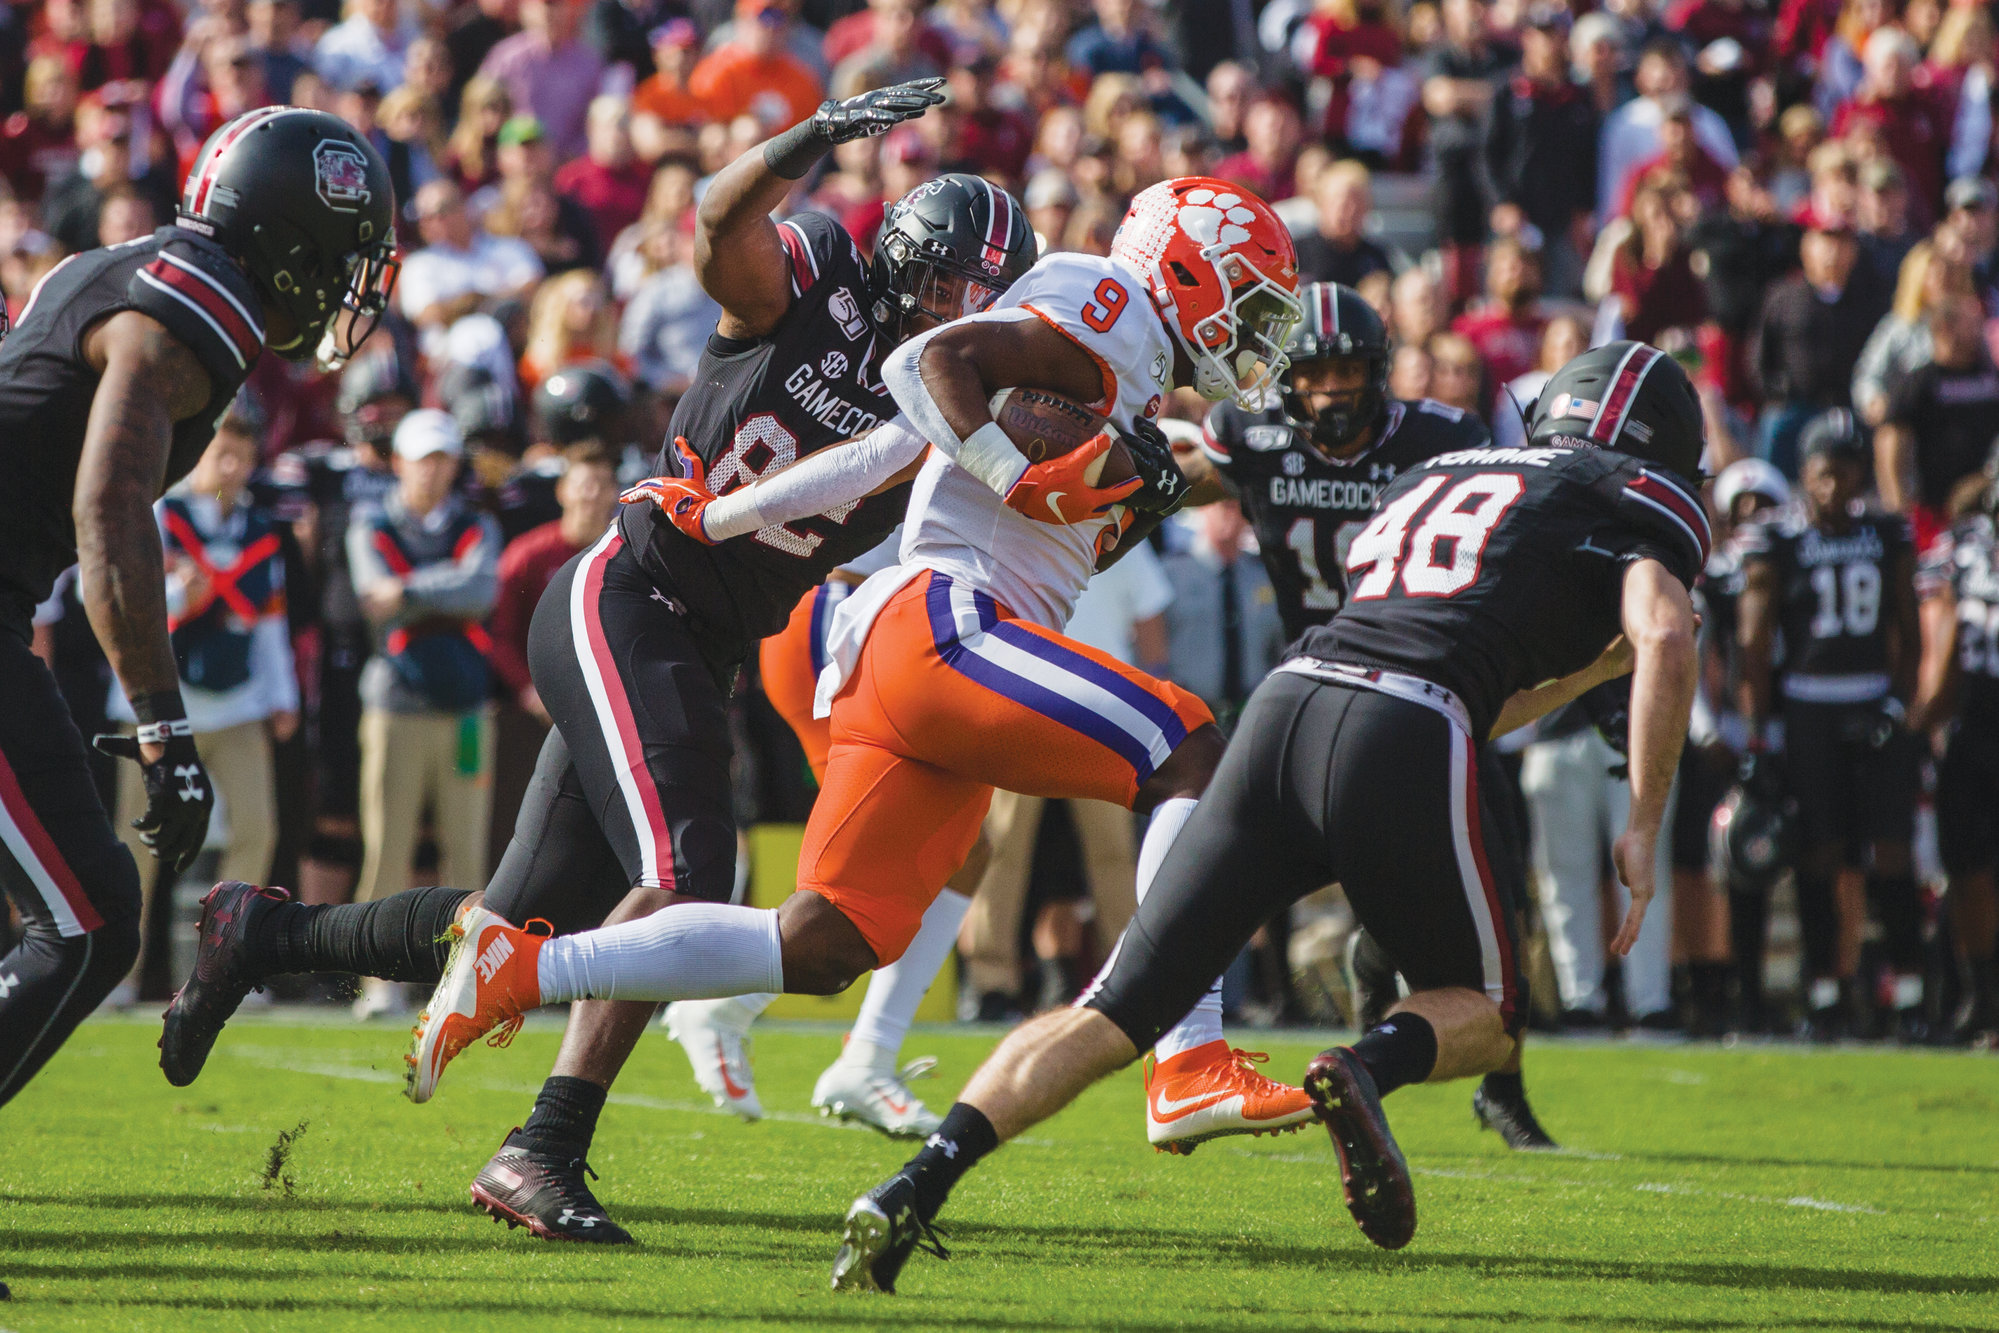 South Carolina and Clemson won't be able to face off in the Palmetto Bowl this year after the Southeastern Conference announced it will host a 10-game conference-only schedule for its teams in 2020 on Thursday.